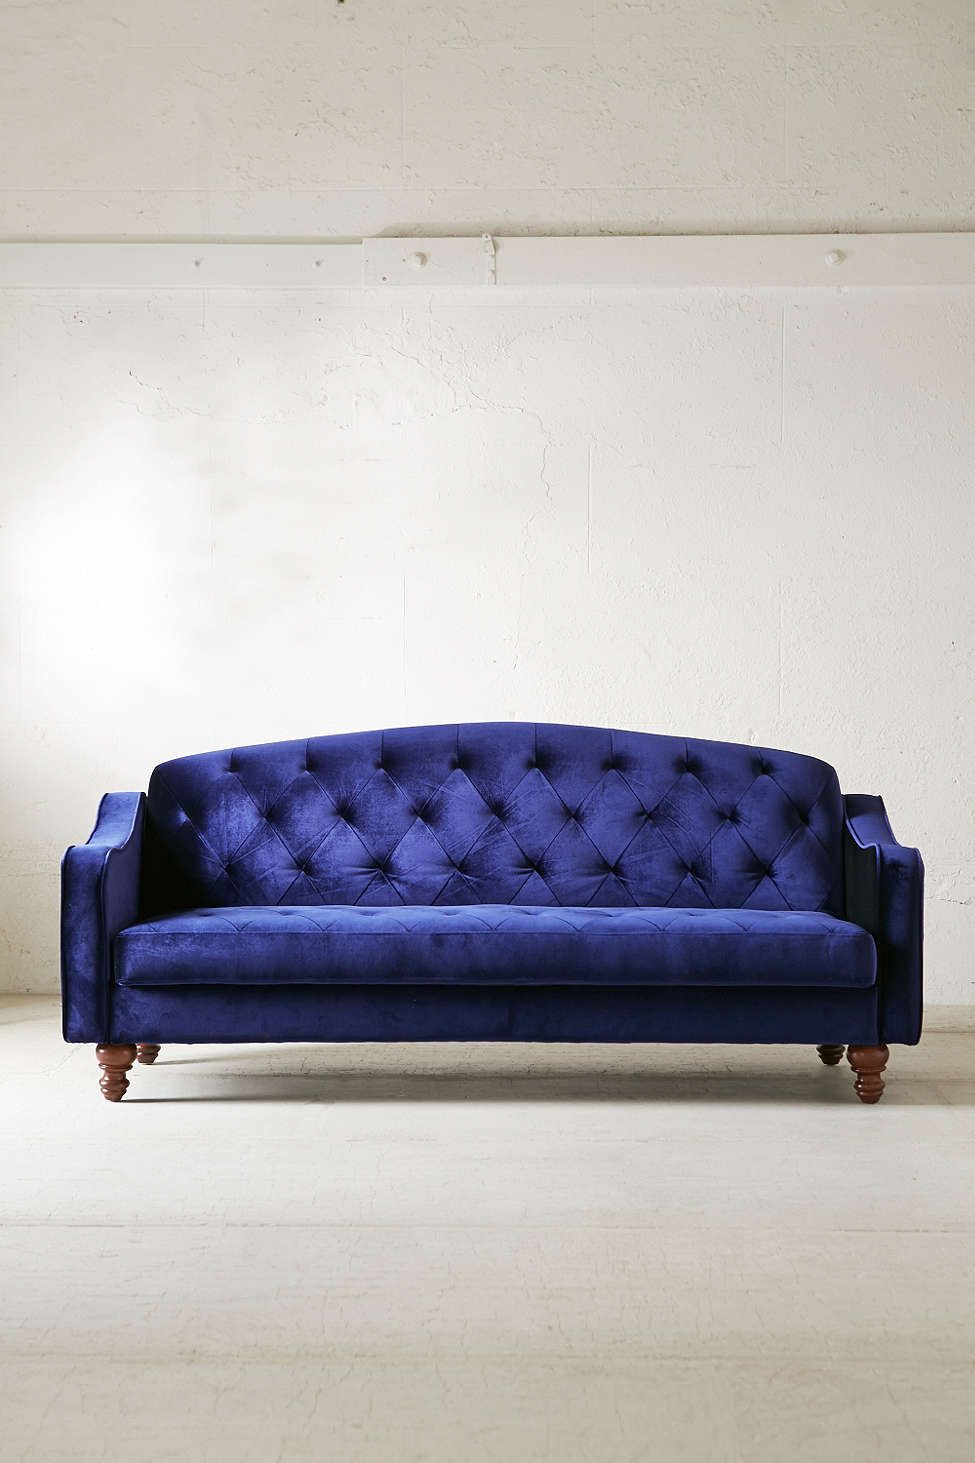 Beau Ava Velvet Tufted Sleeper Sofa   Urban Outfitters